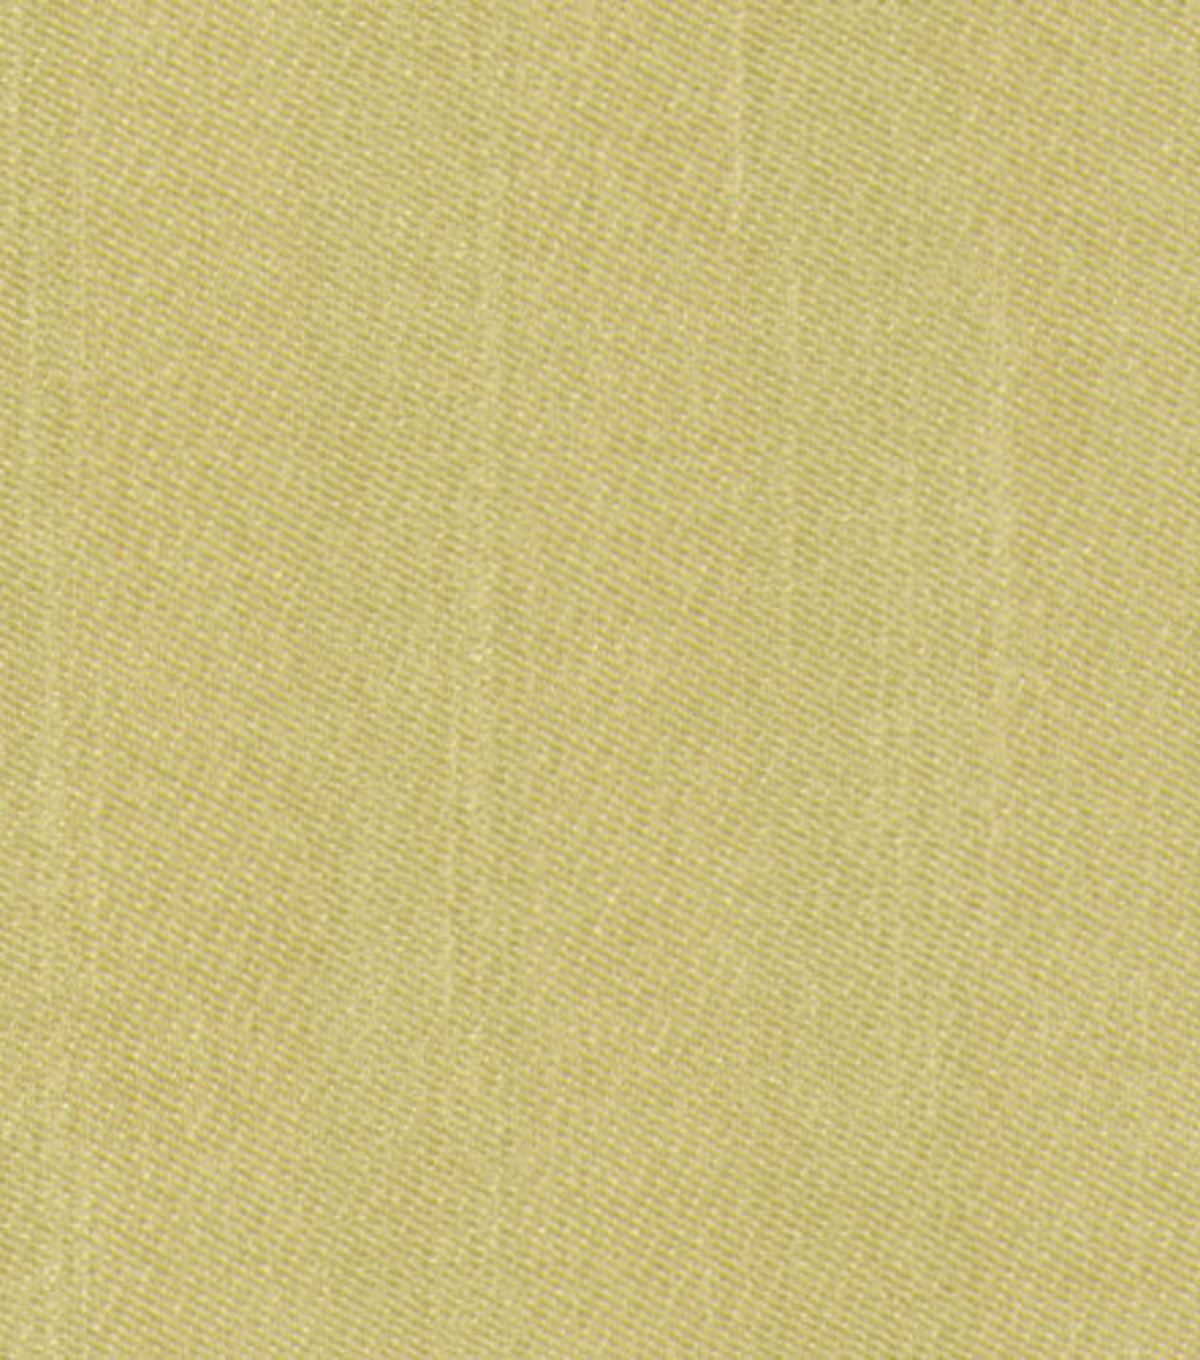 Home Decor 8\u0022x8\u0022 Fabric Swatch-Barrow M7407 5300 Parchment